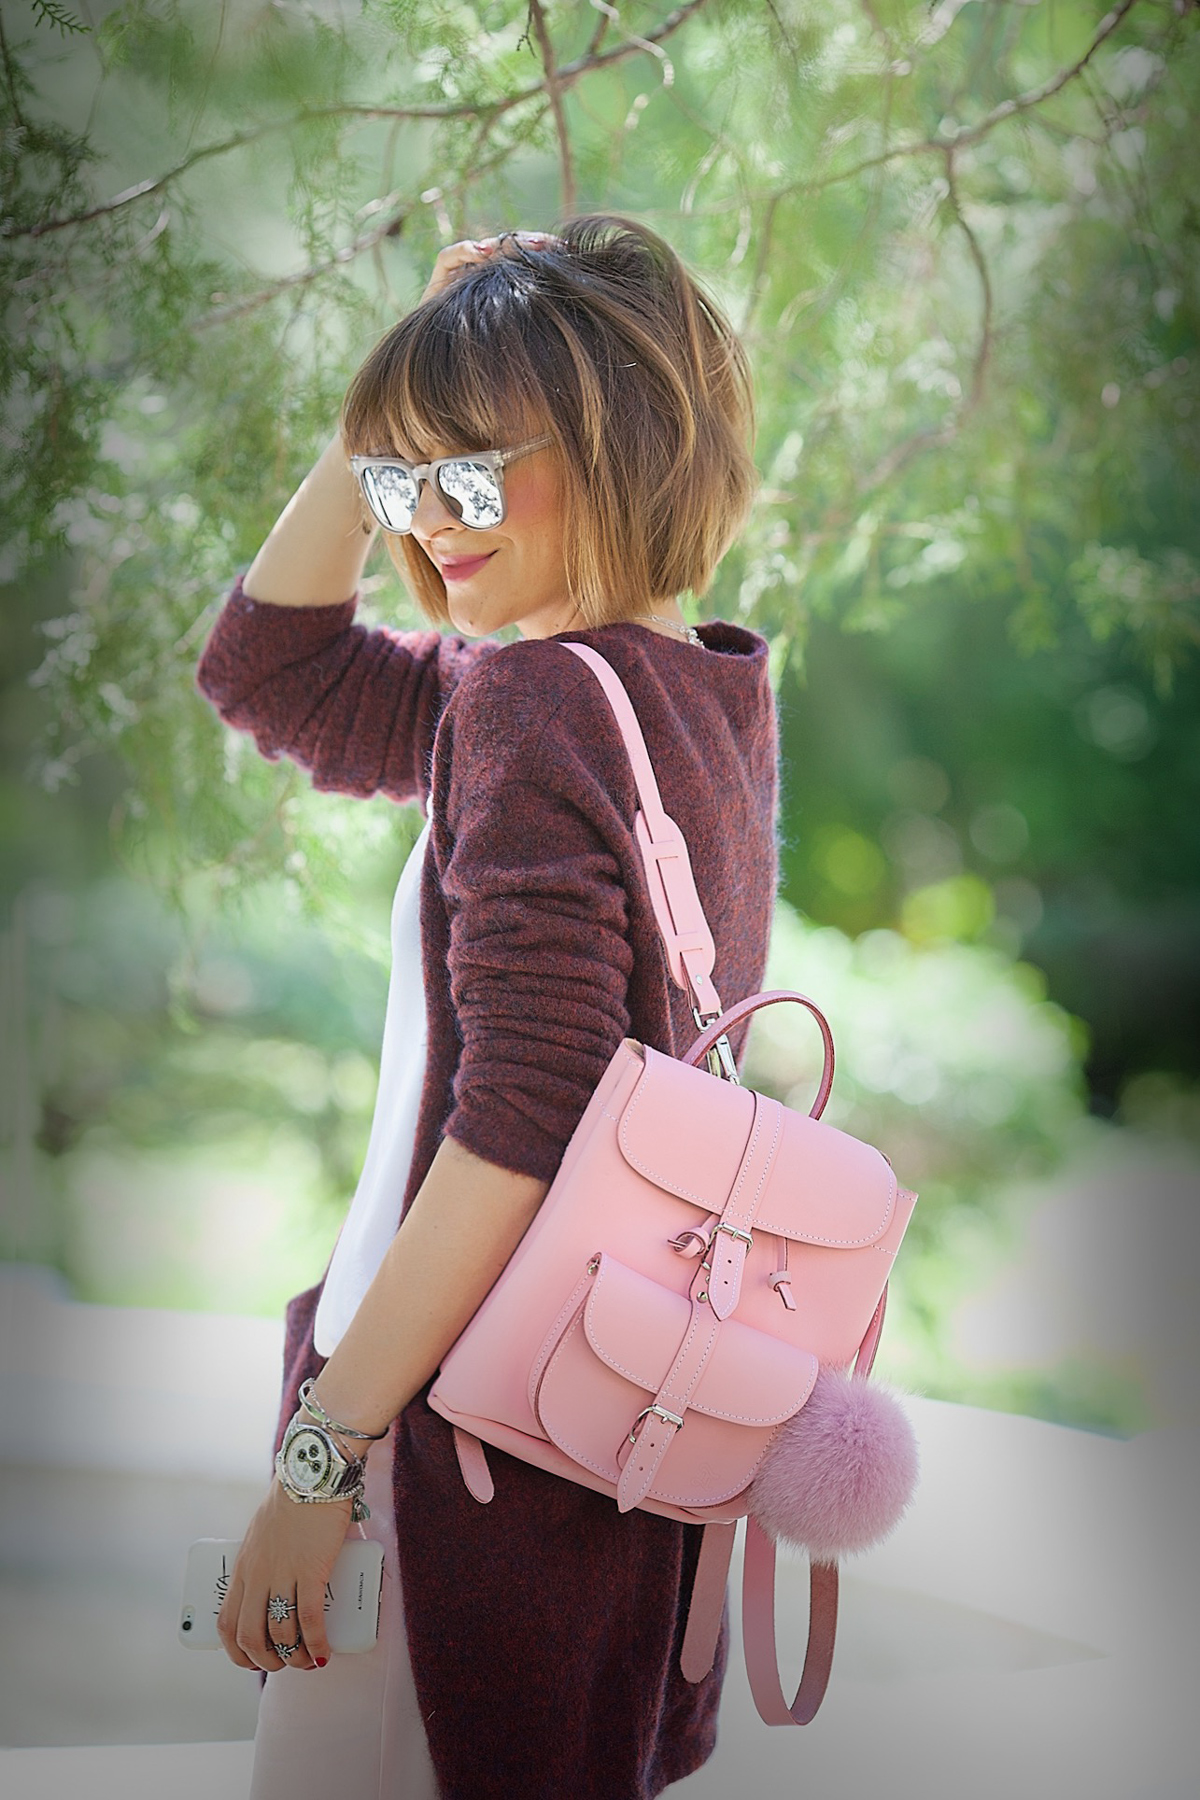 grafea backpack - grafea bag outfit- galant girl - srteet style -